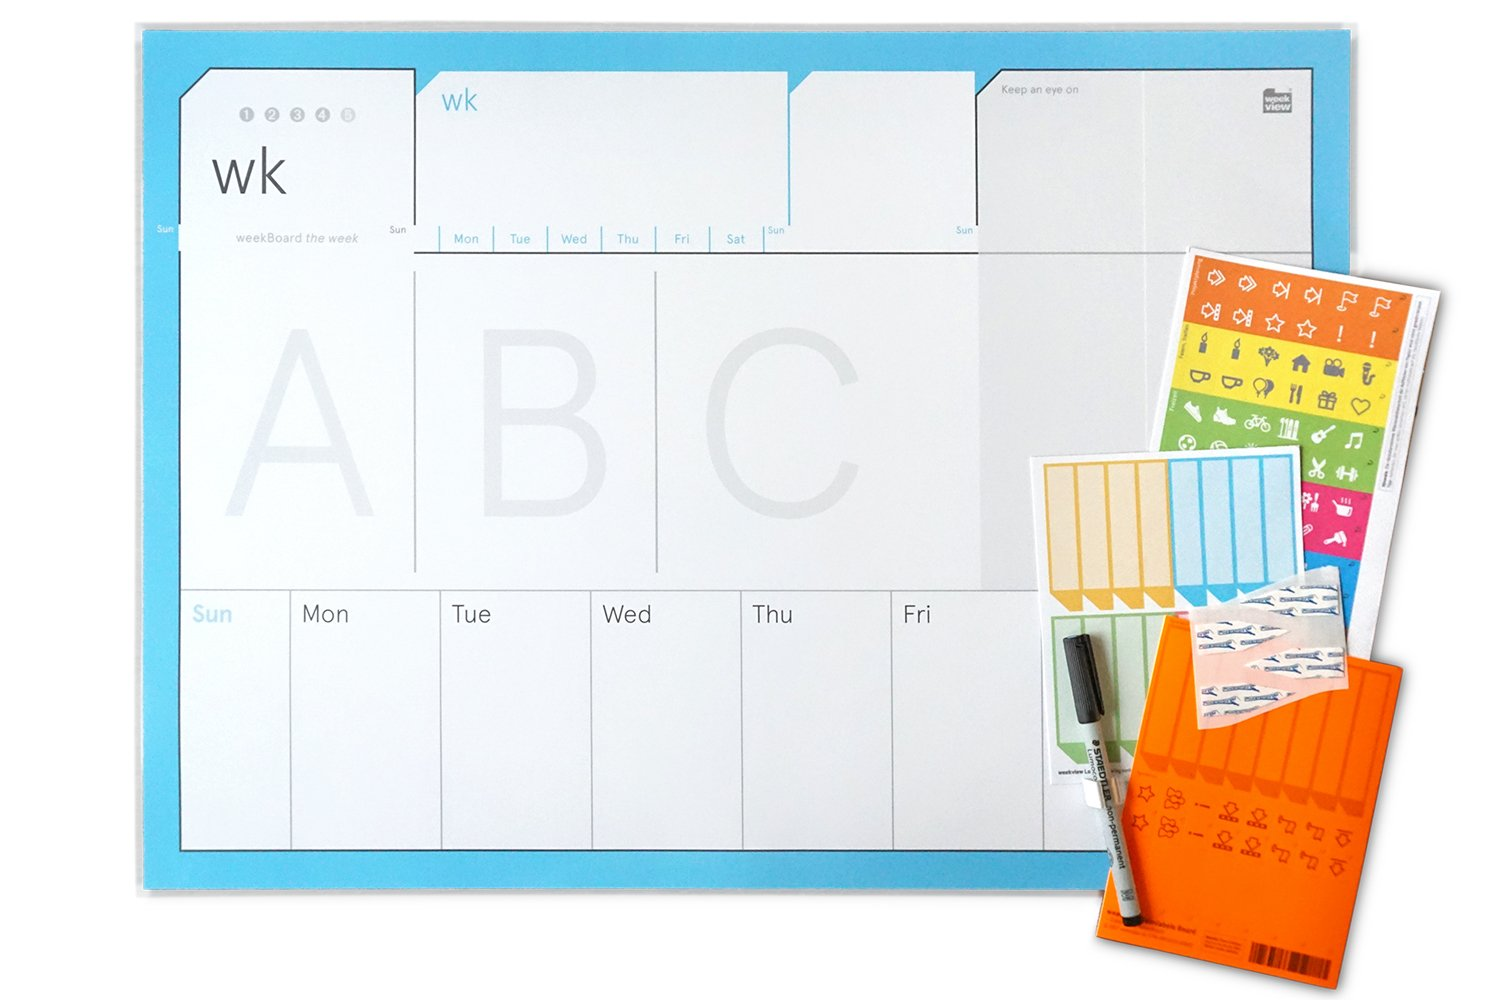 weekBoard | the week Planner! weekview